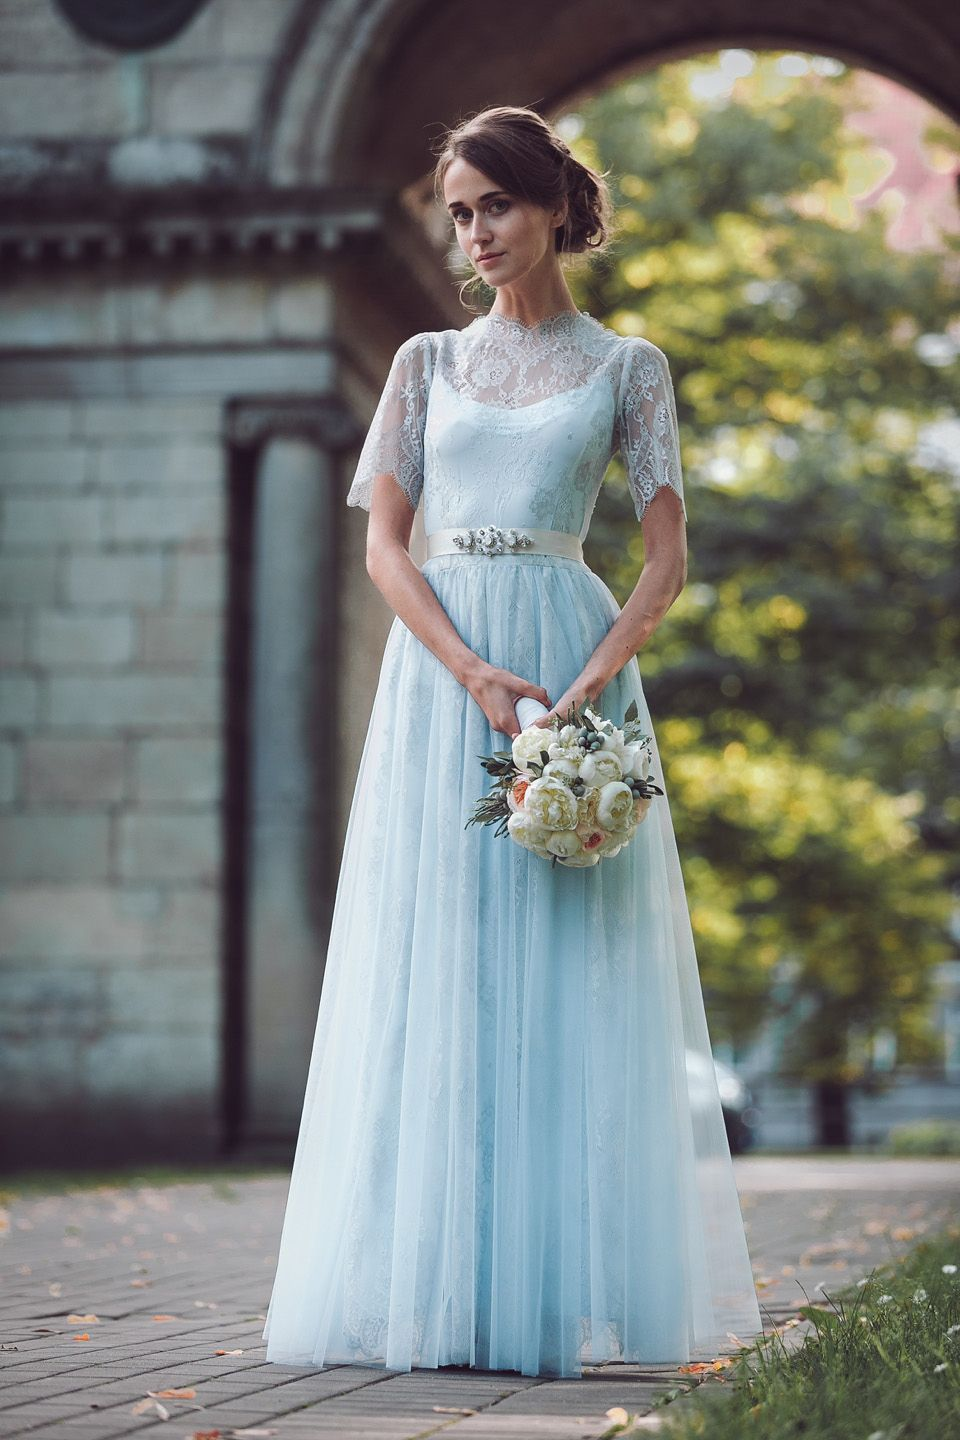 Pin by Annora on Popular Wedding Dress | Pinterest | Blue wedding ...